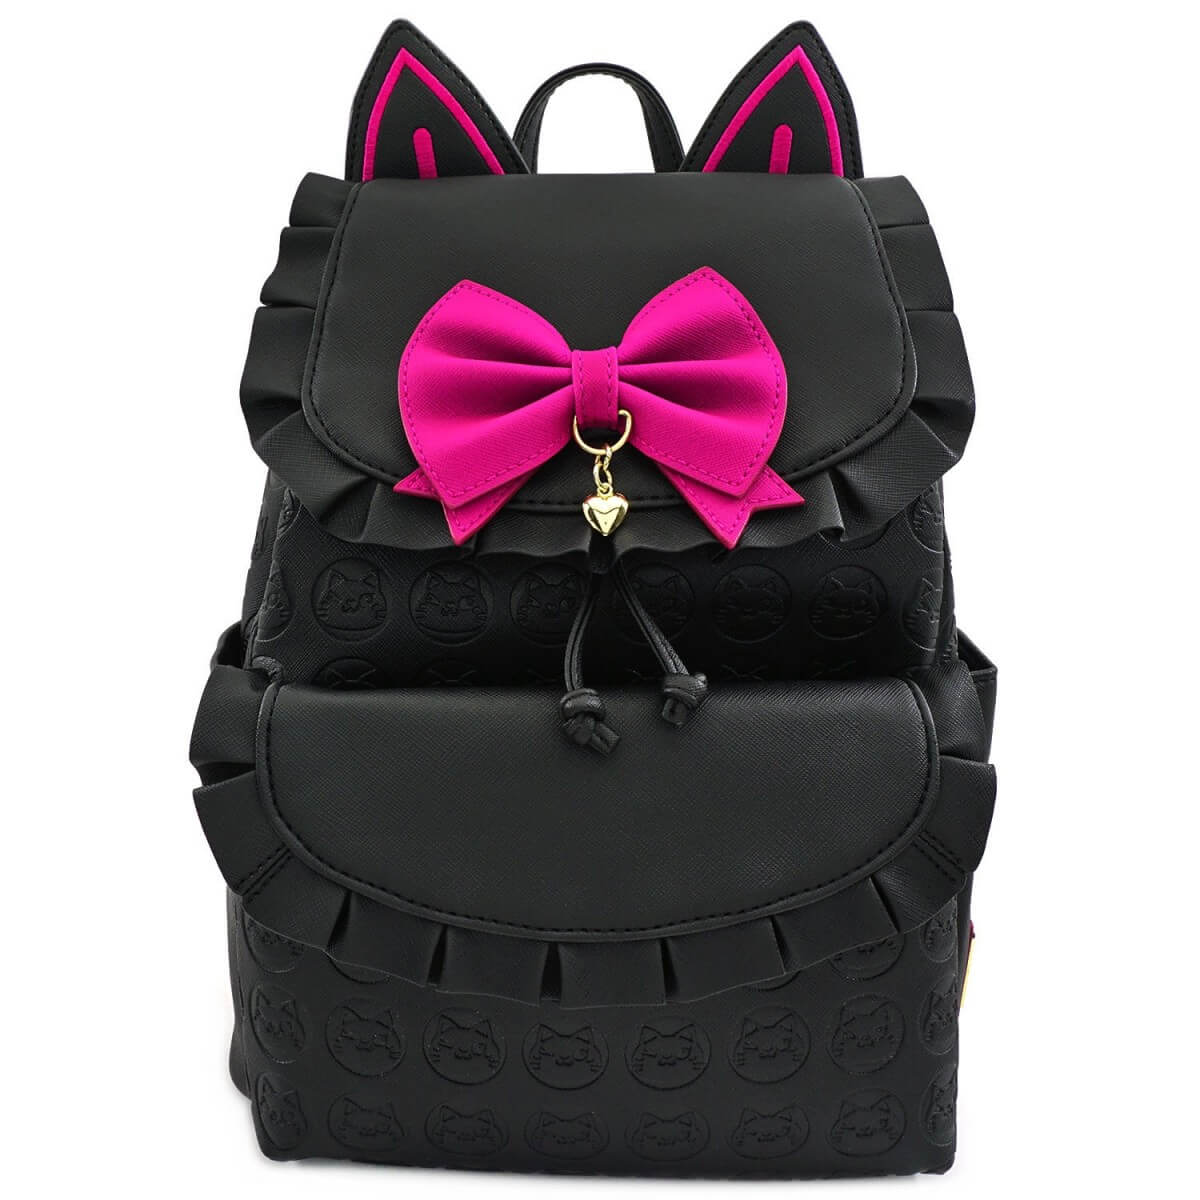 Image of Loungefly Overwatch Faux Leather Drawstring Mini Backpack